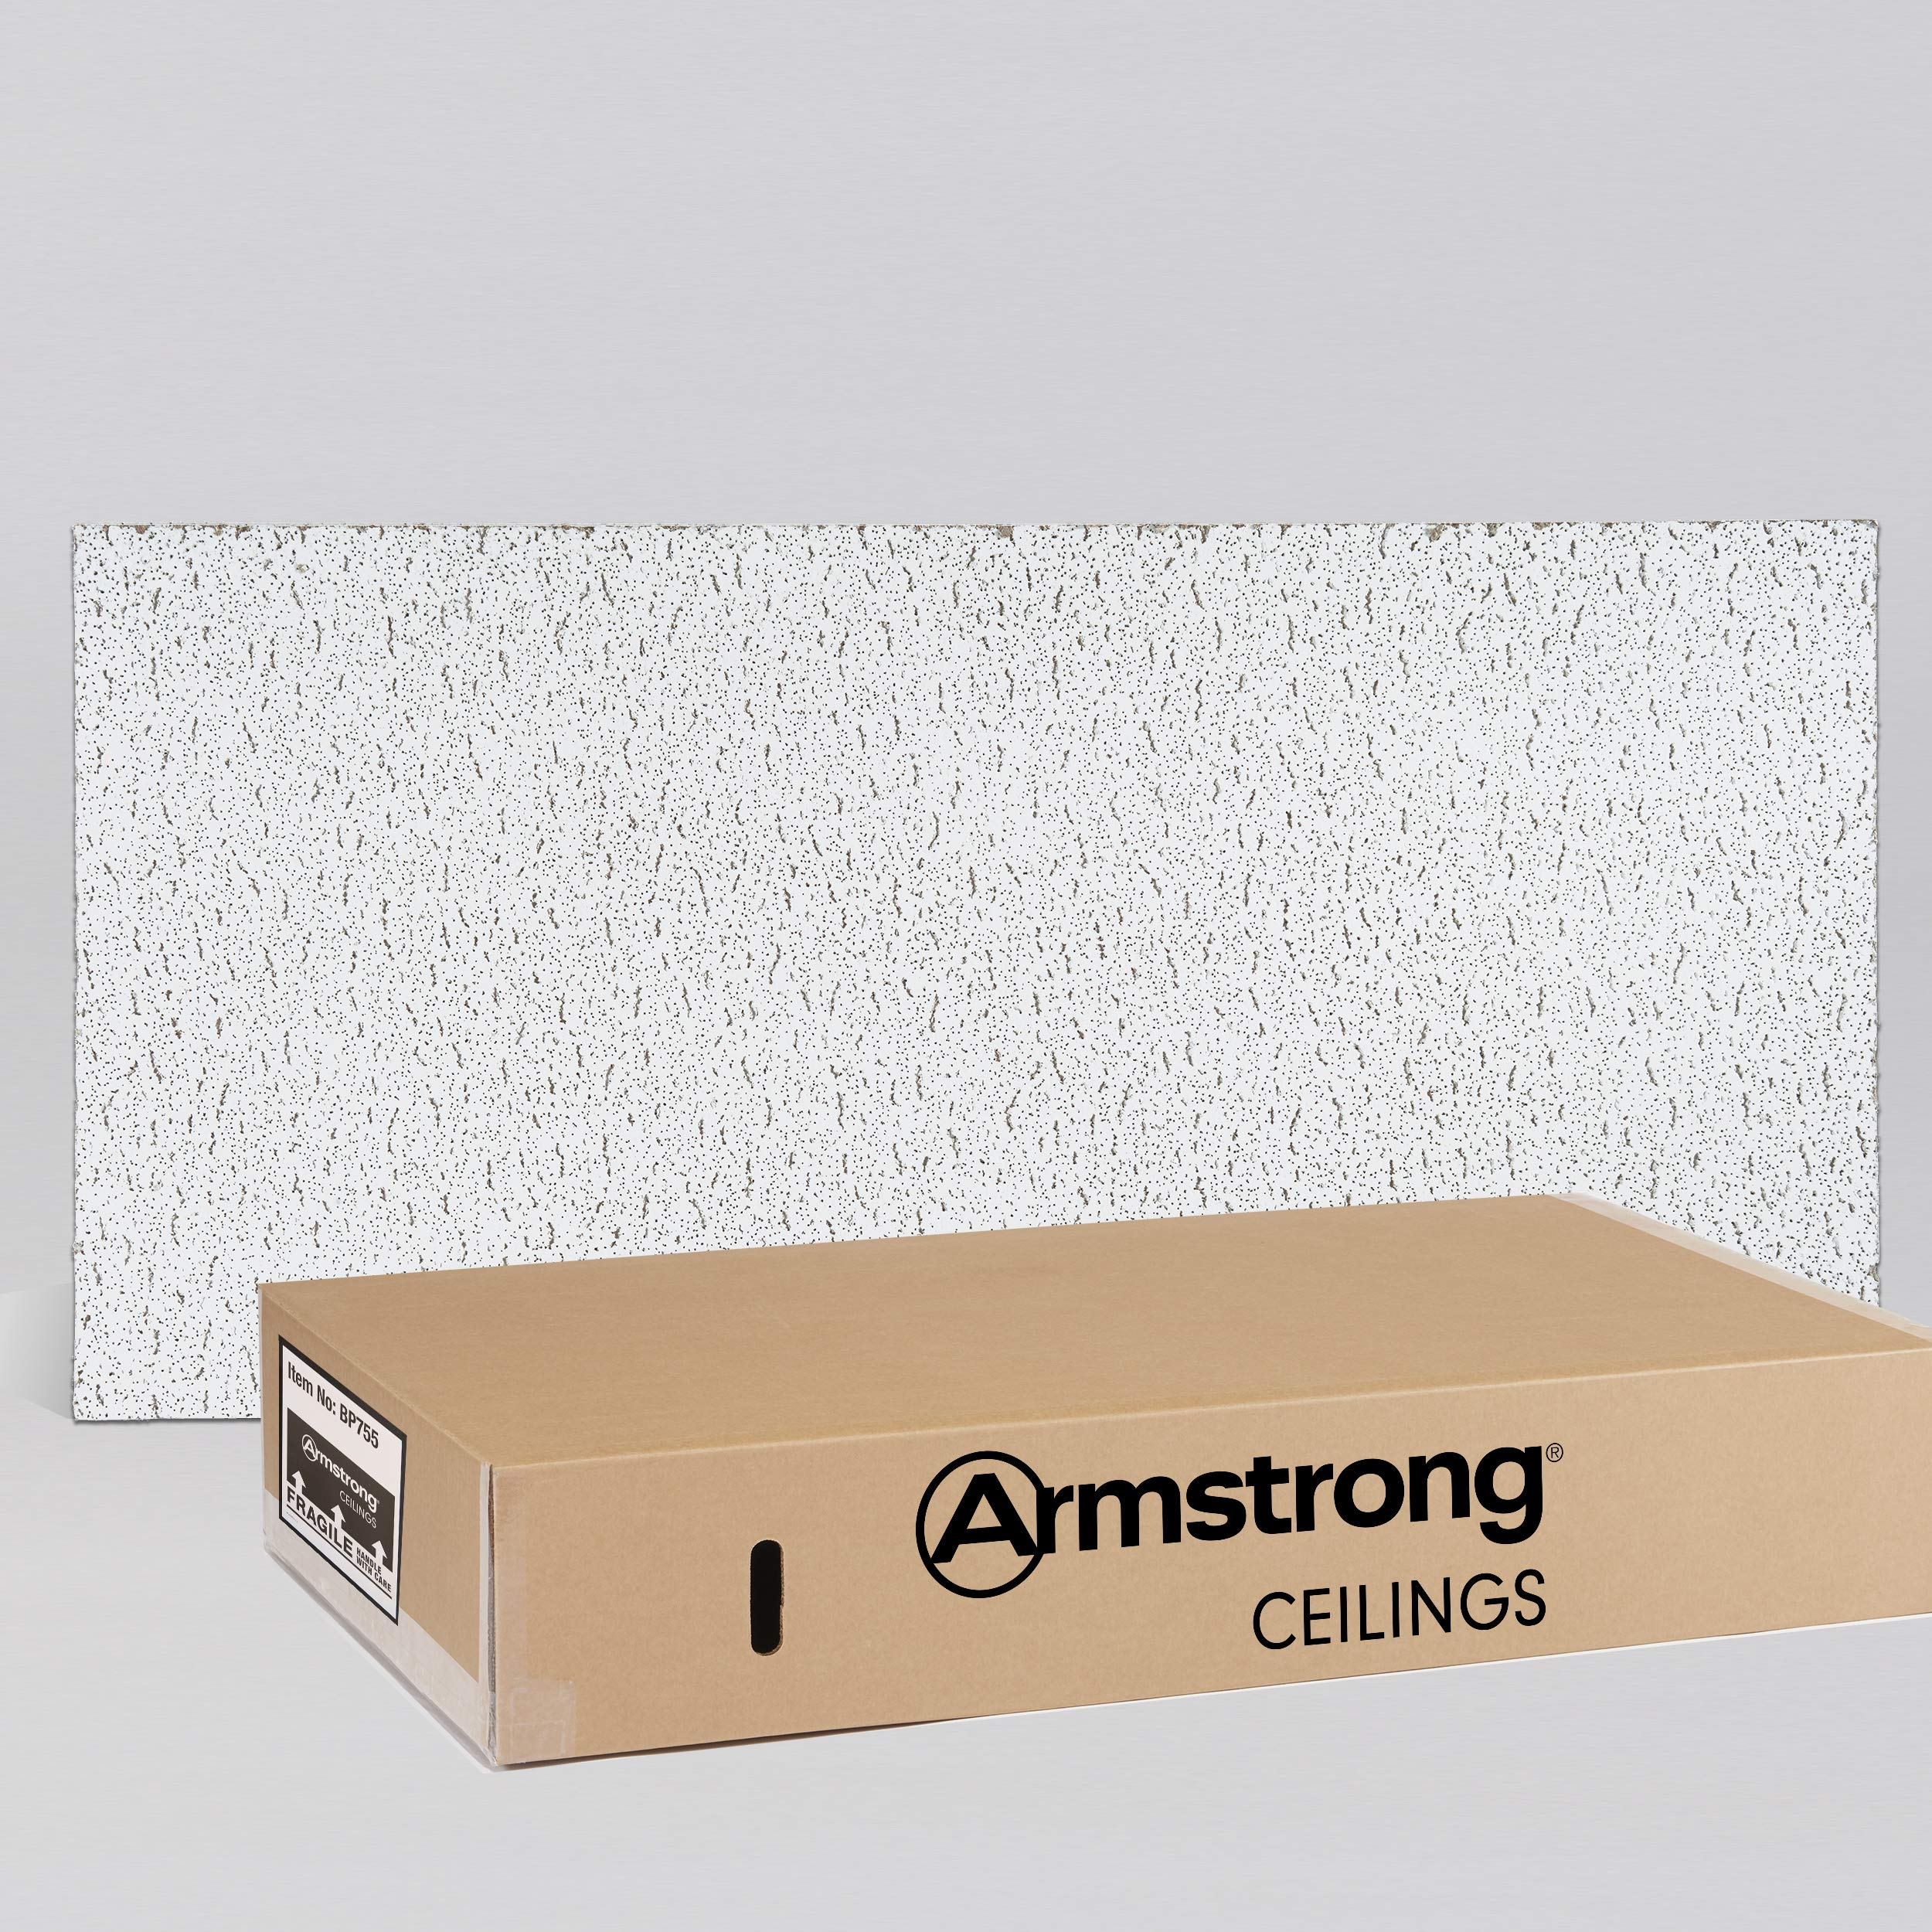 Armstrong Ceiling Tile; 2x4 Ceiling Tiles - Acoustic Ceilings for Suspended Ceiling Grid; Quality Drop Ceilings Direct from the Manufacturer; FISSURED Item 755 - 12 pcs Lay-in by Armstrong